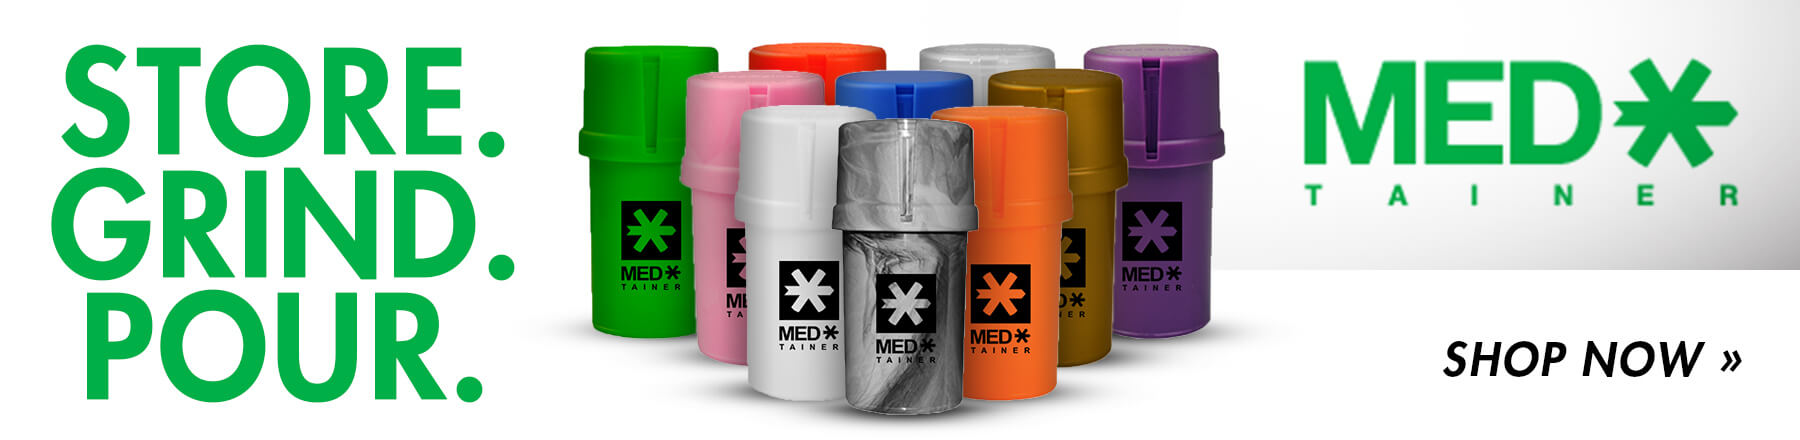 Medtainers On Sale Now